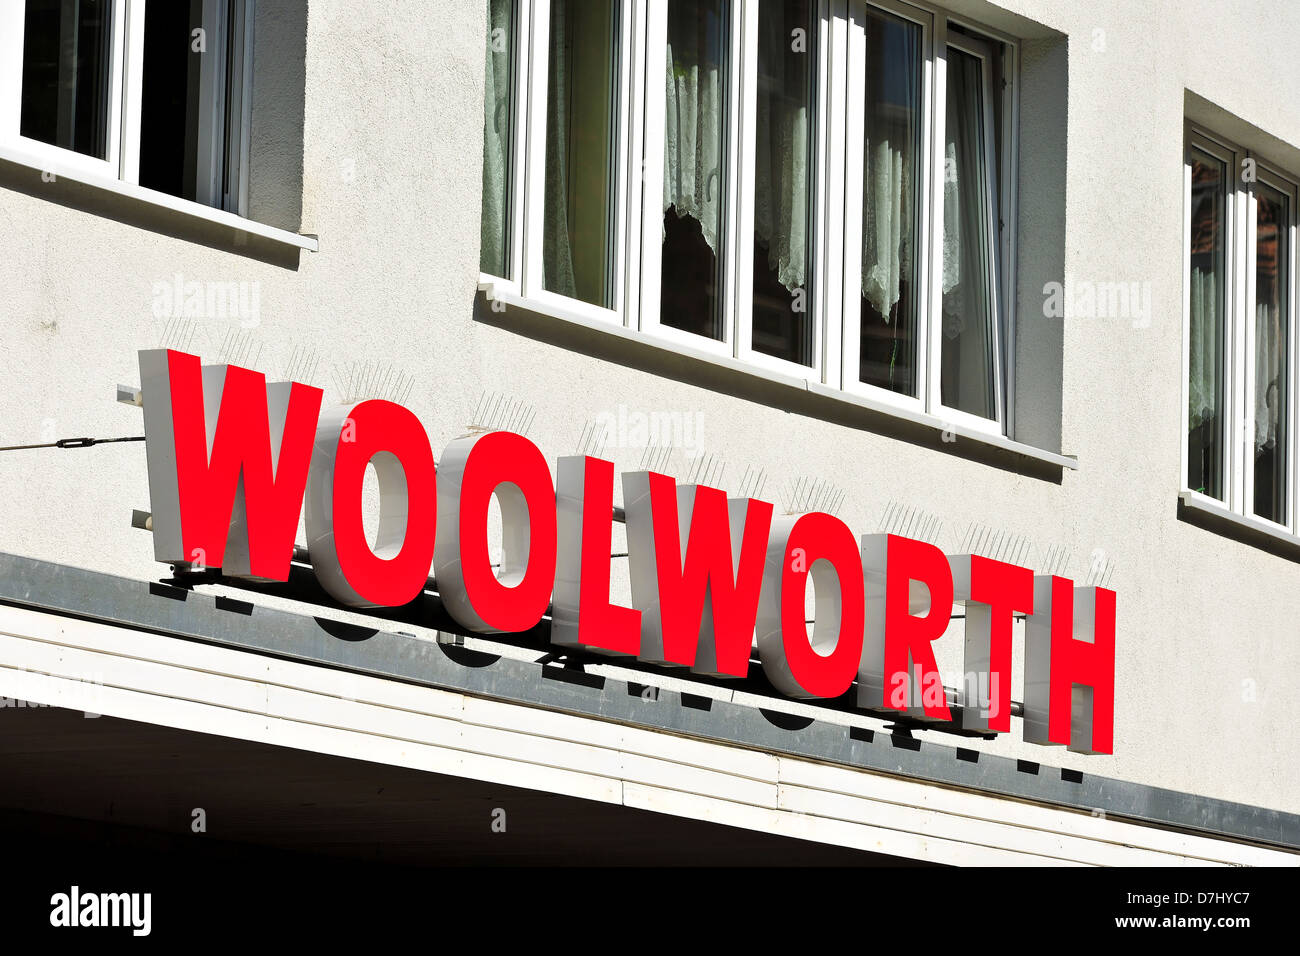 Companies, company signs, names, logo, Woolworth - Stock Image